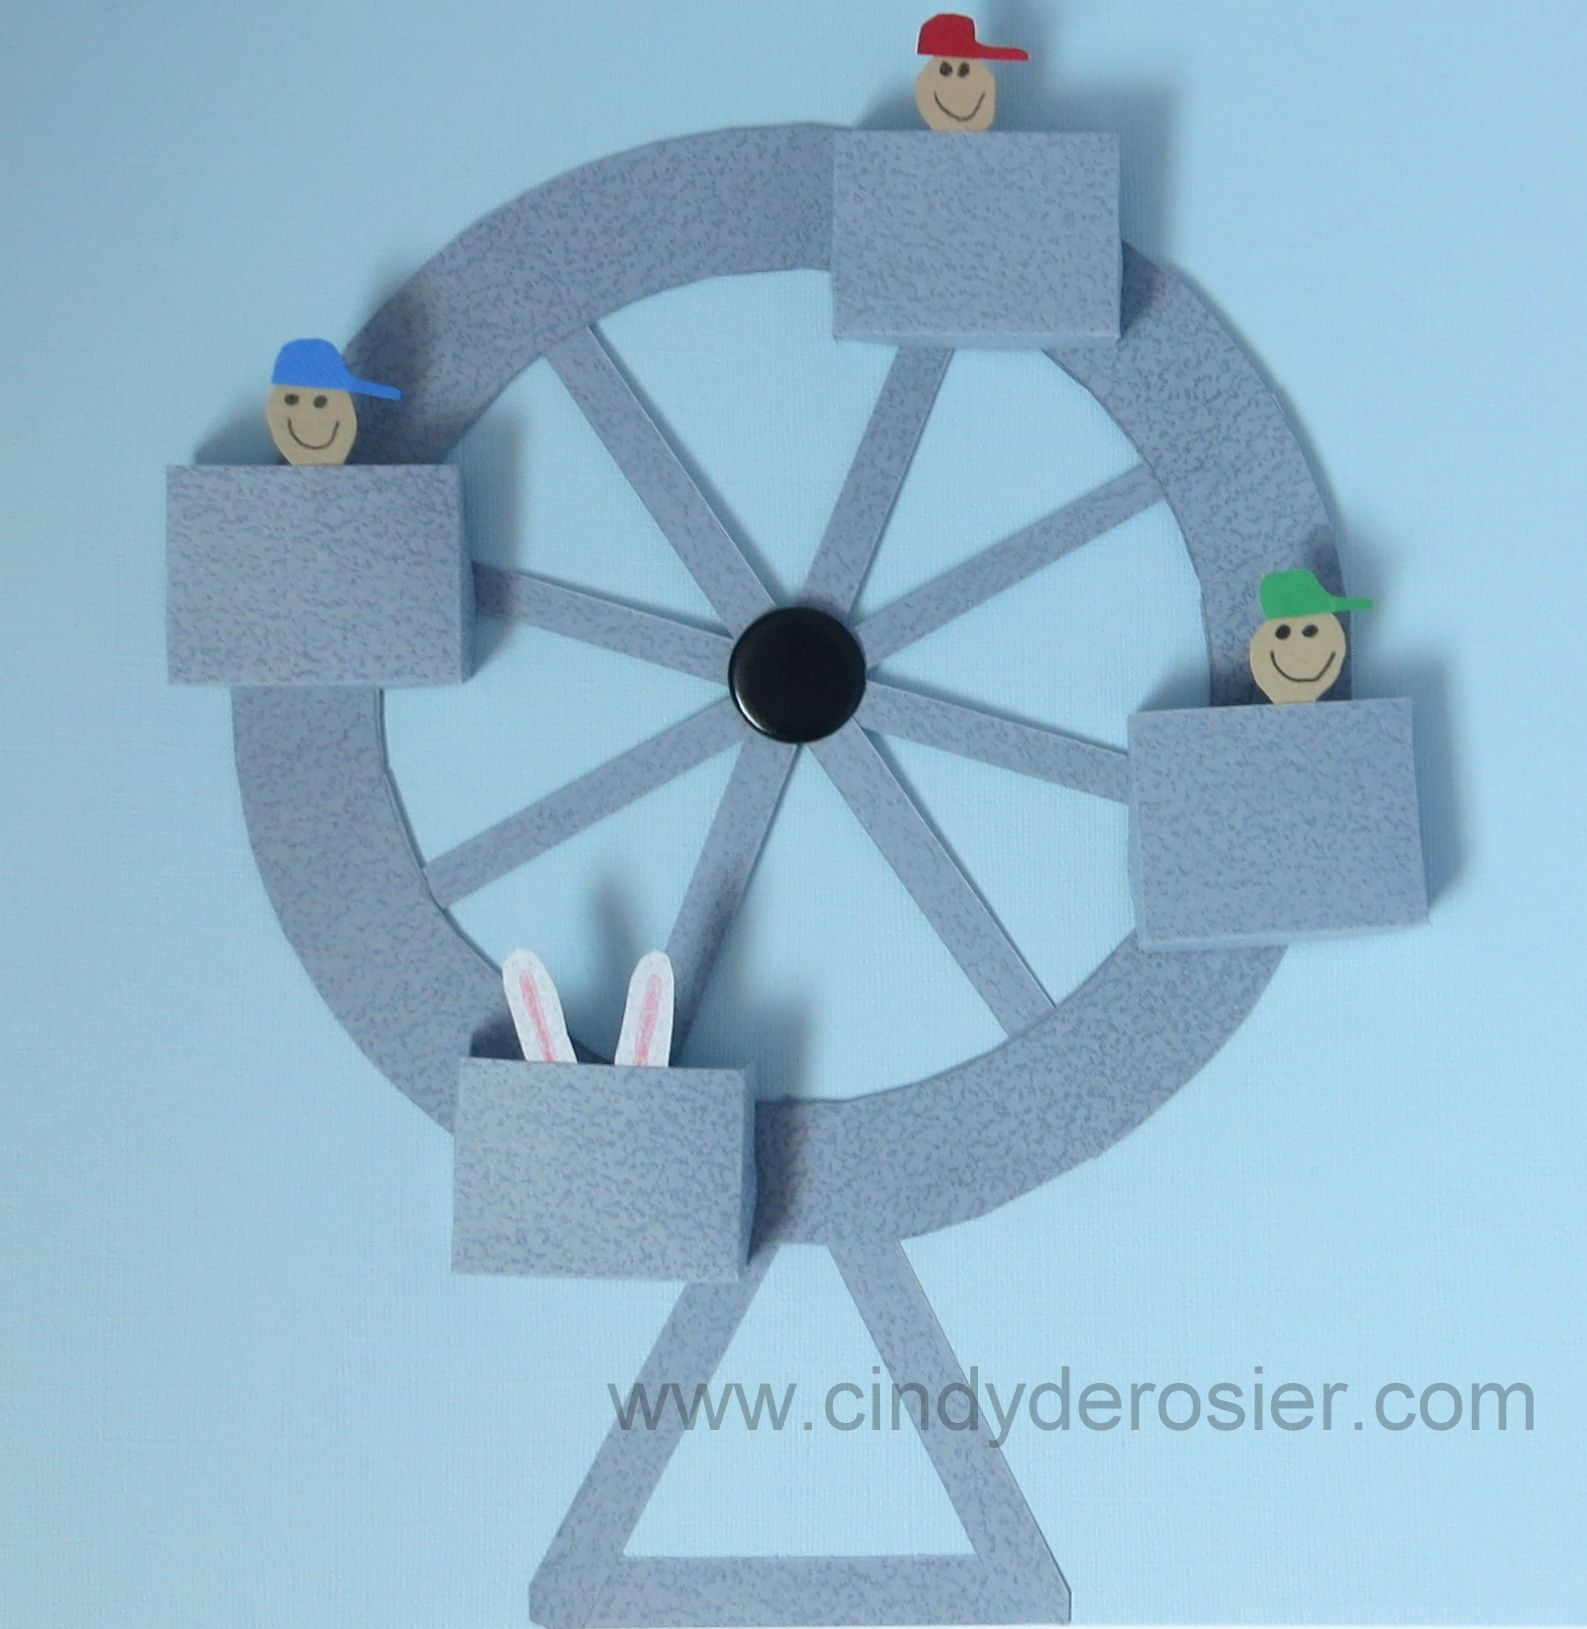 Working paper ferris wheel ferris wheel wheels and crafts create a ferris wheel out of paper that actually turns fill the seats with passengers jeuxipadfo Image collections